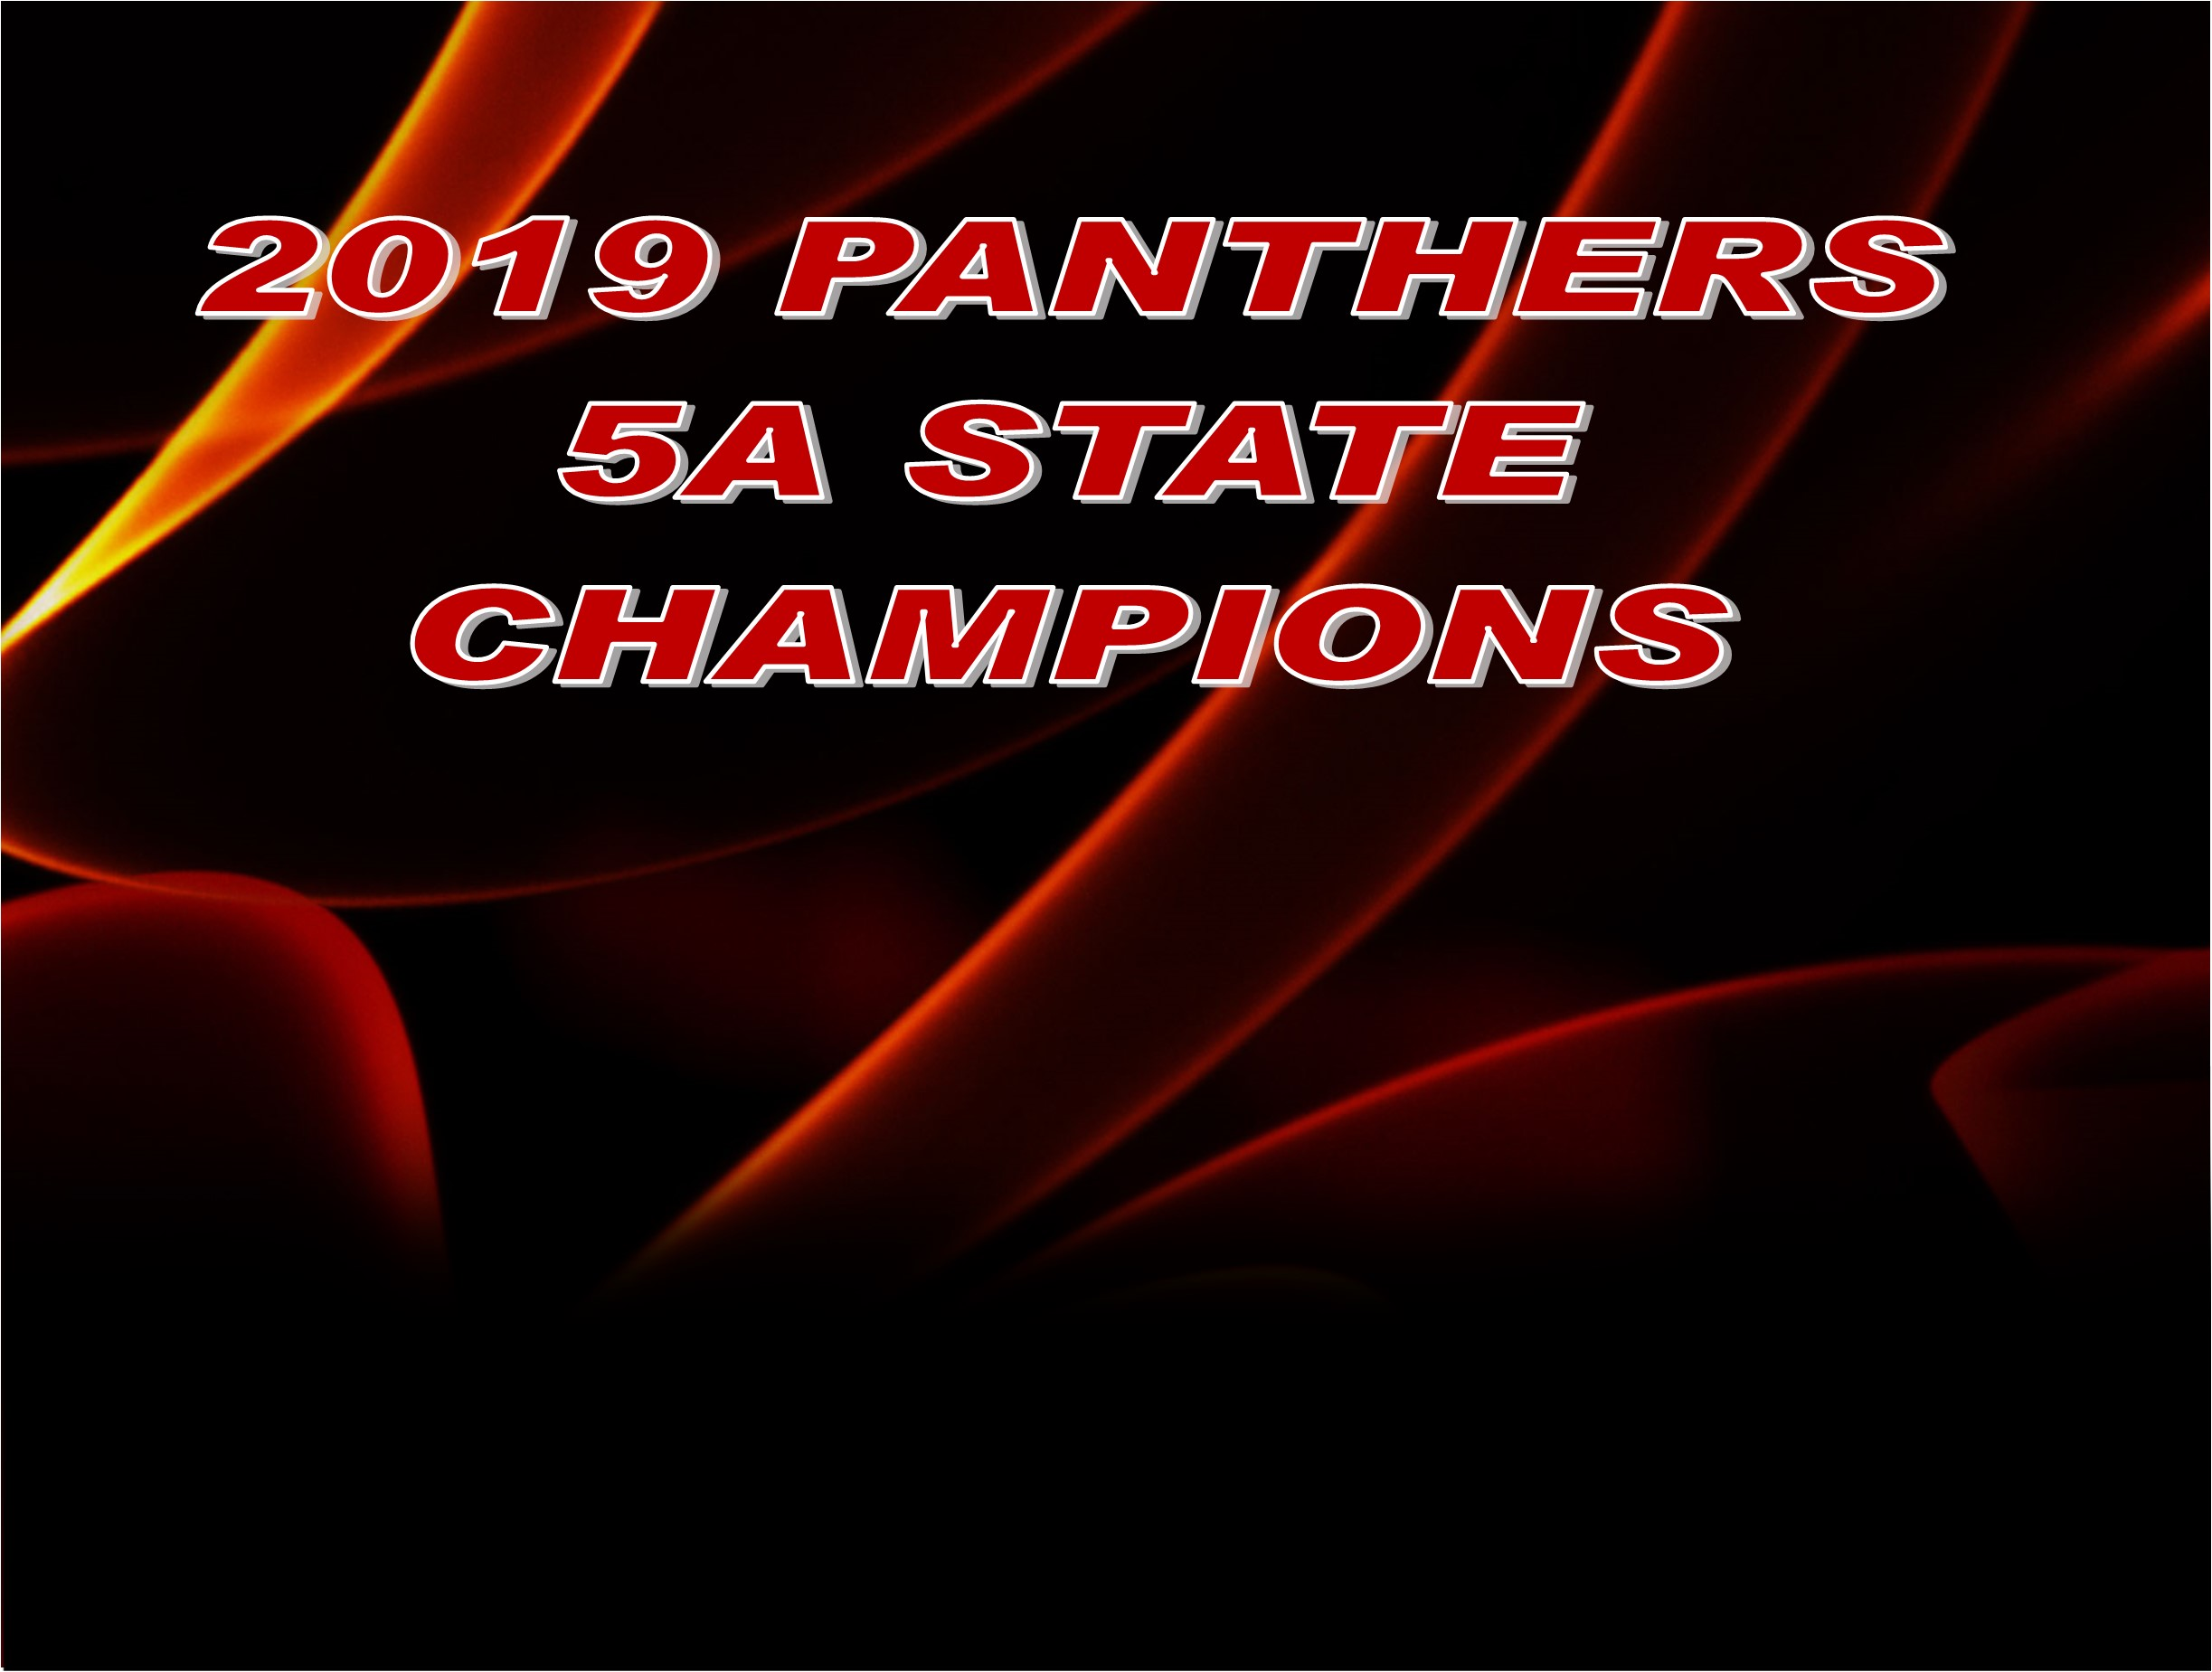 Baseball: Colleyville Panthers Win First 5A State Championship by Defeating the Georgetown Eagles